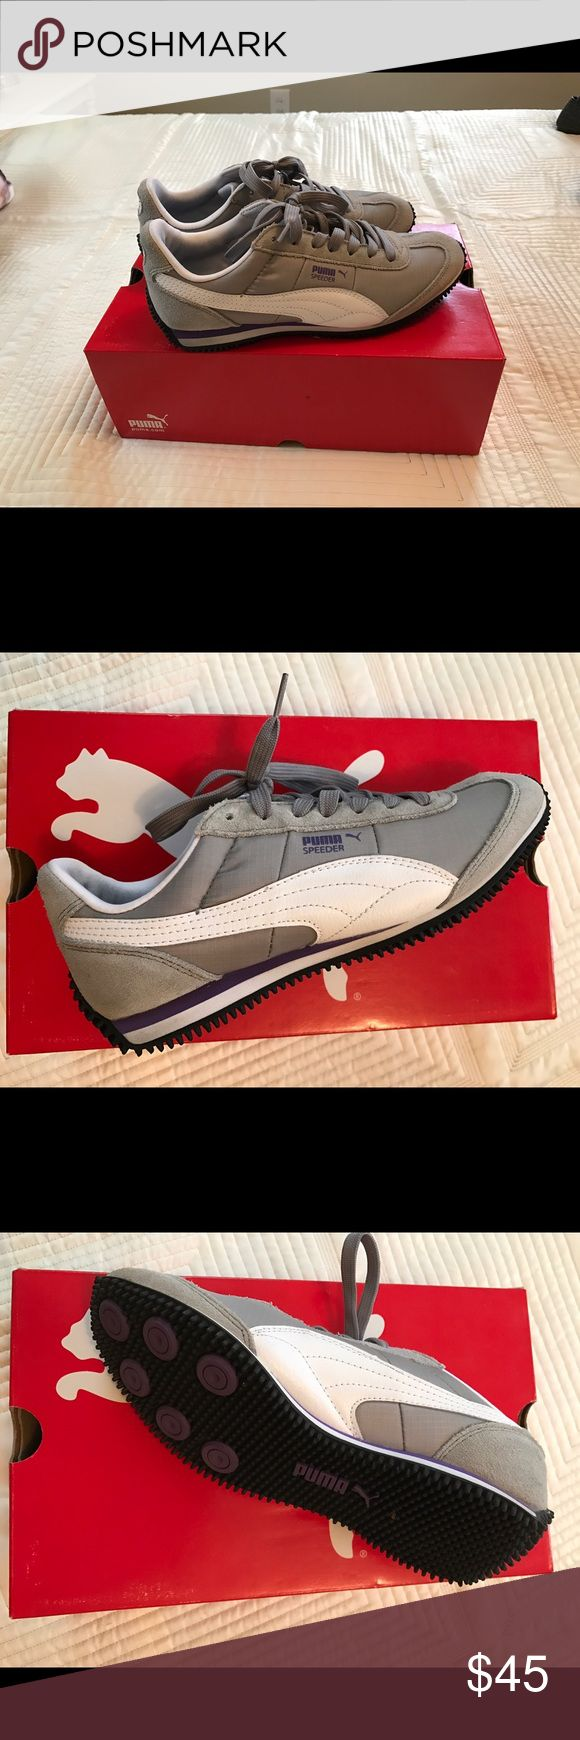 Women's Puma Speeder retro sneakers - never worn Original Puma Speeder shoes, size 6.5, gray, purple and white. Puma Shoes Athletic Shoes